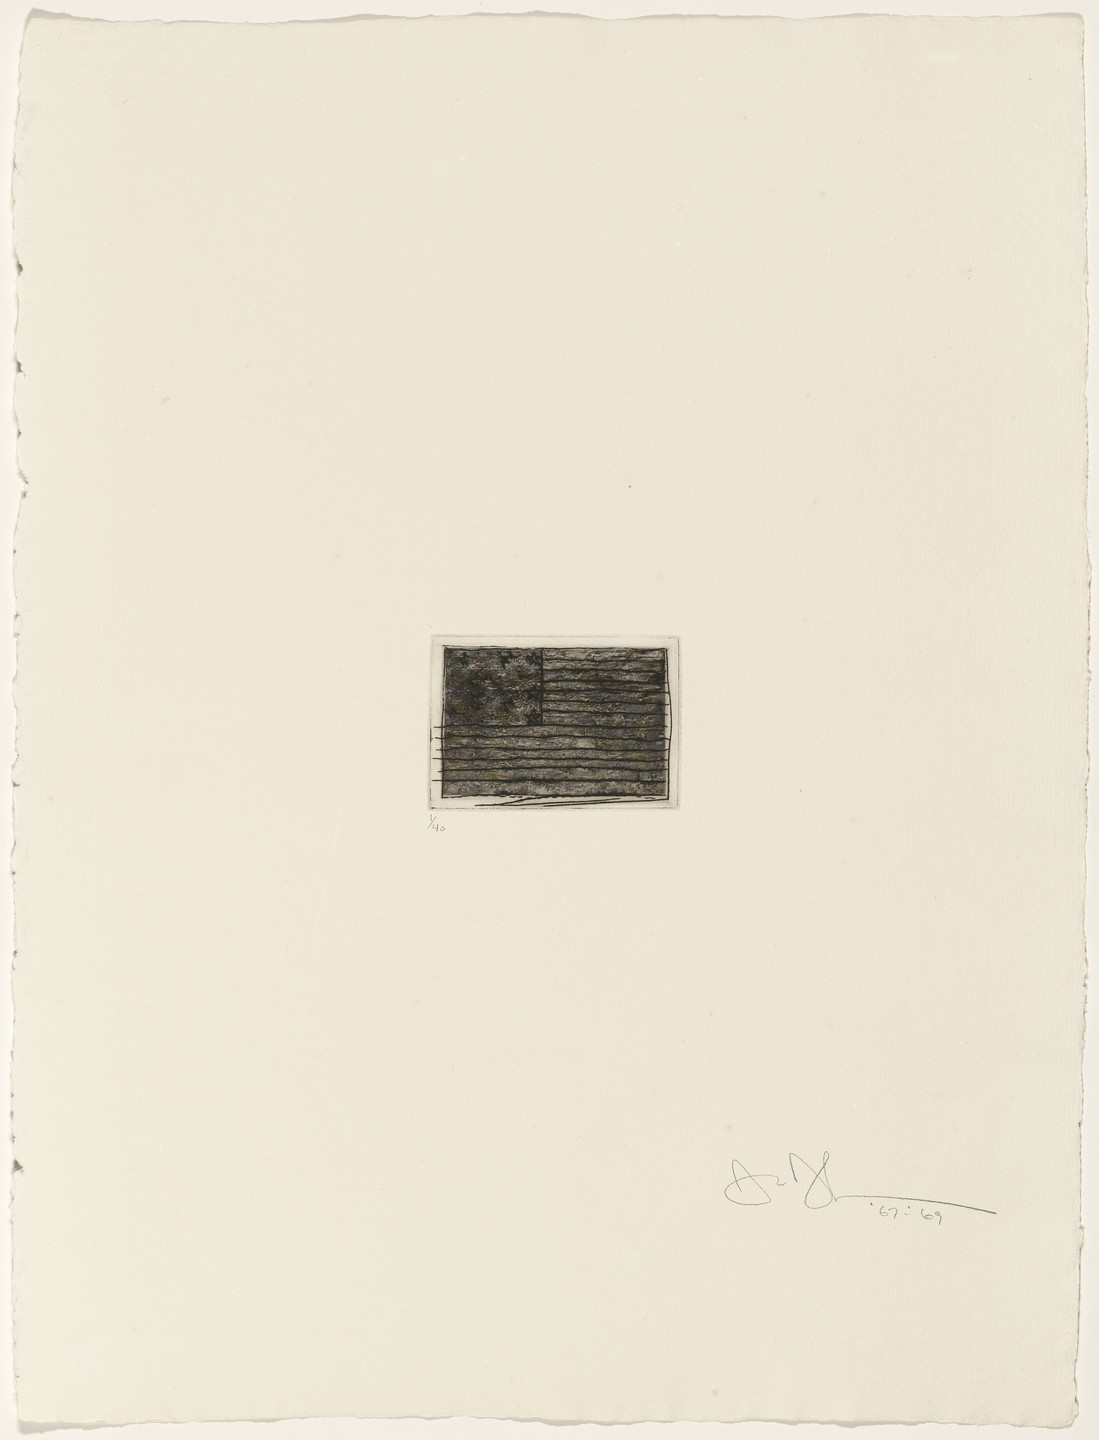 Jasper Johns. Flag from 1st Etchings-2nd State. 1967–69, published 1969